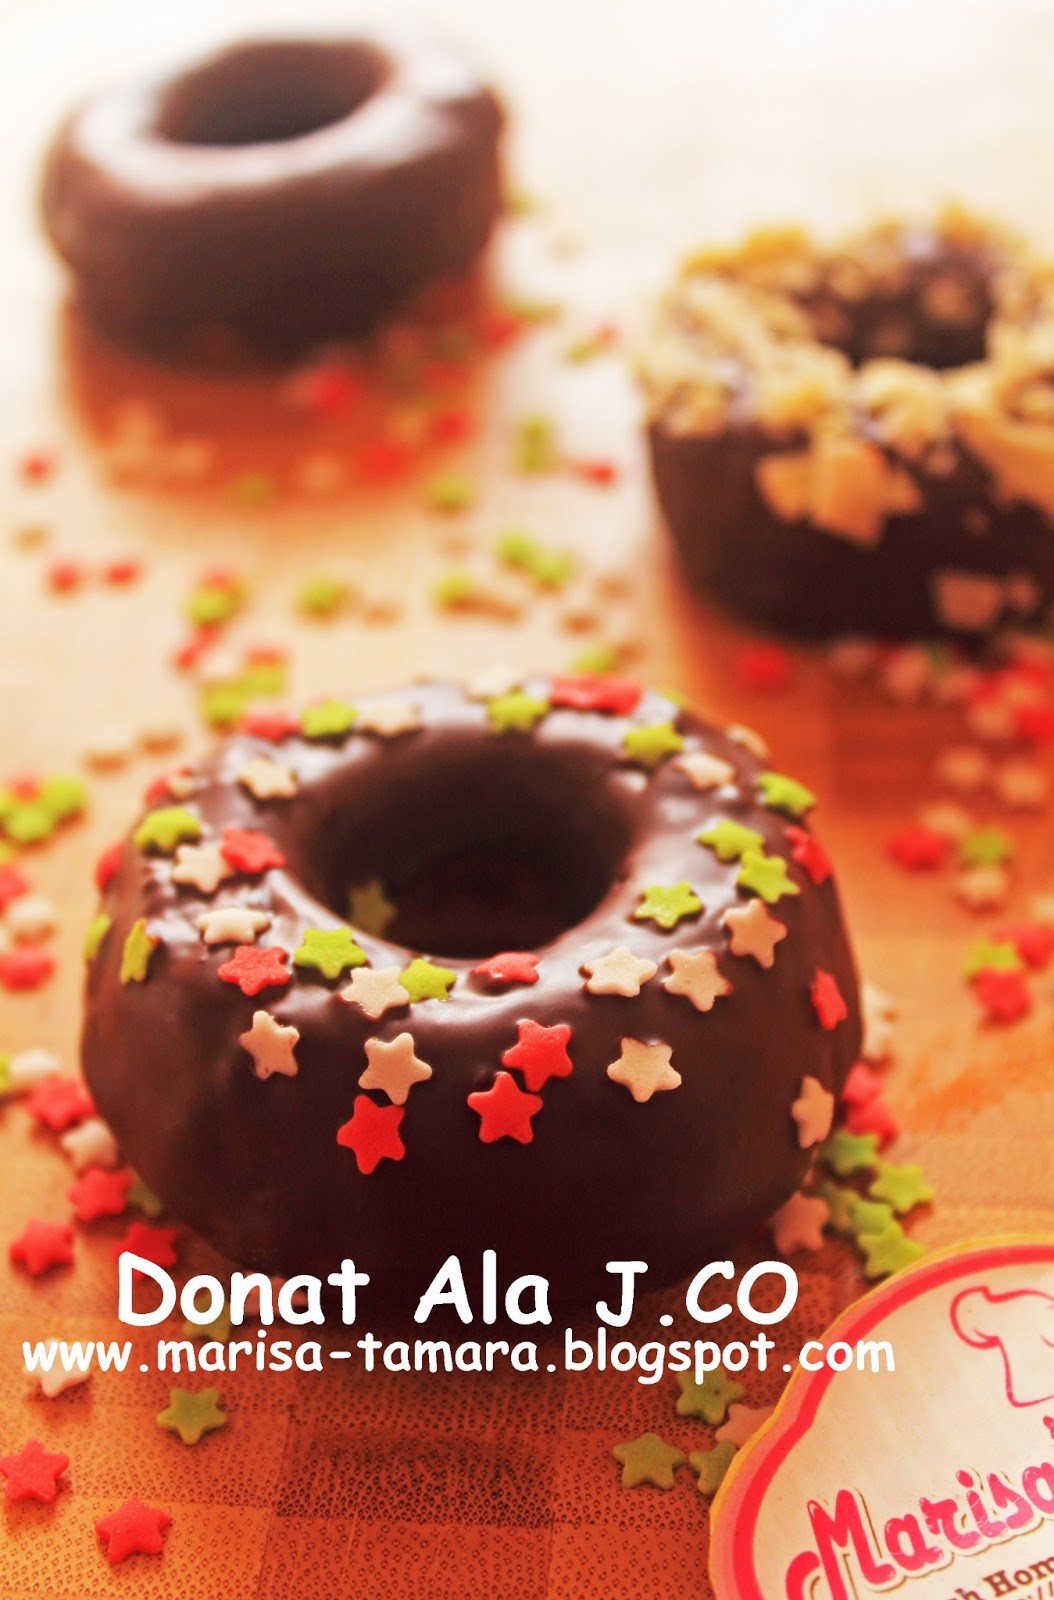 Welcome To Marisa's Kitchen: Donat Ala J.Co